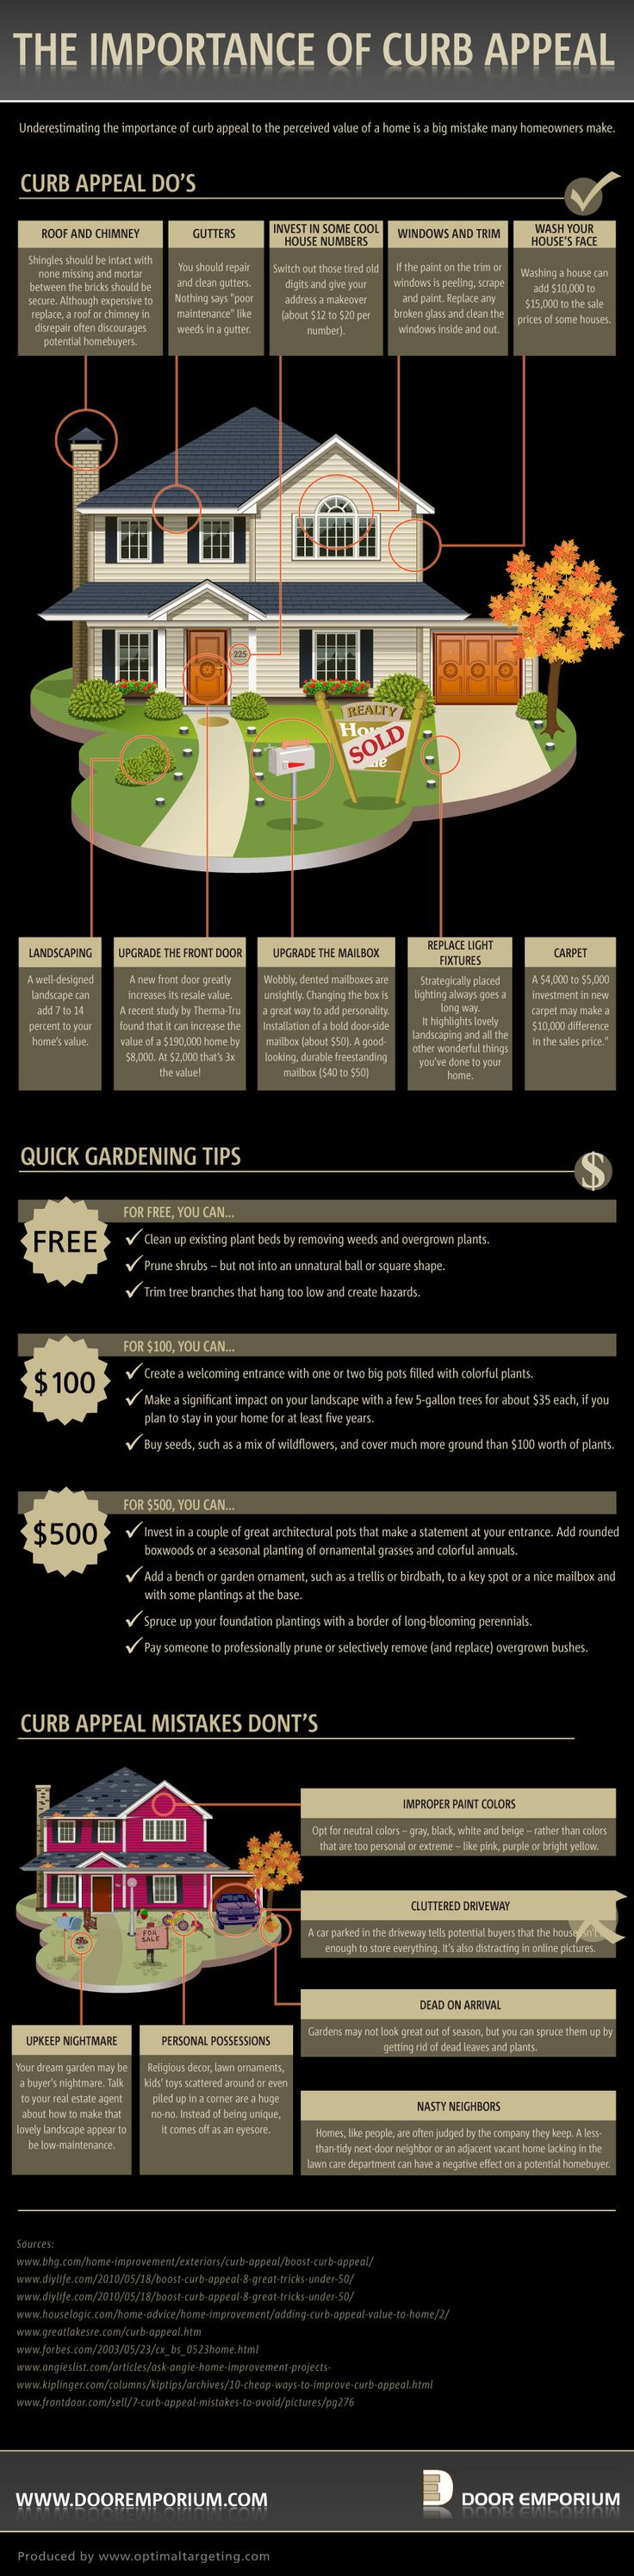 What's your curb appeal? Importance of Curb Appeal [INFOGRAPHIC] #KeepingCurrentMatters#curbappeal